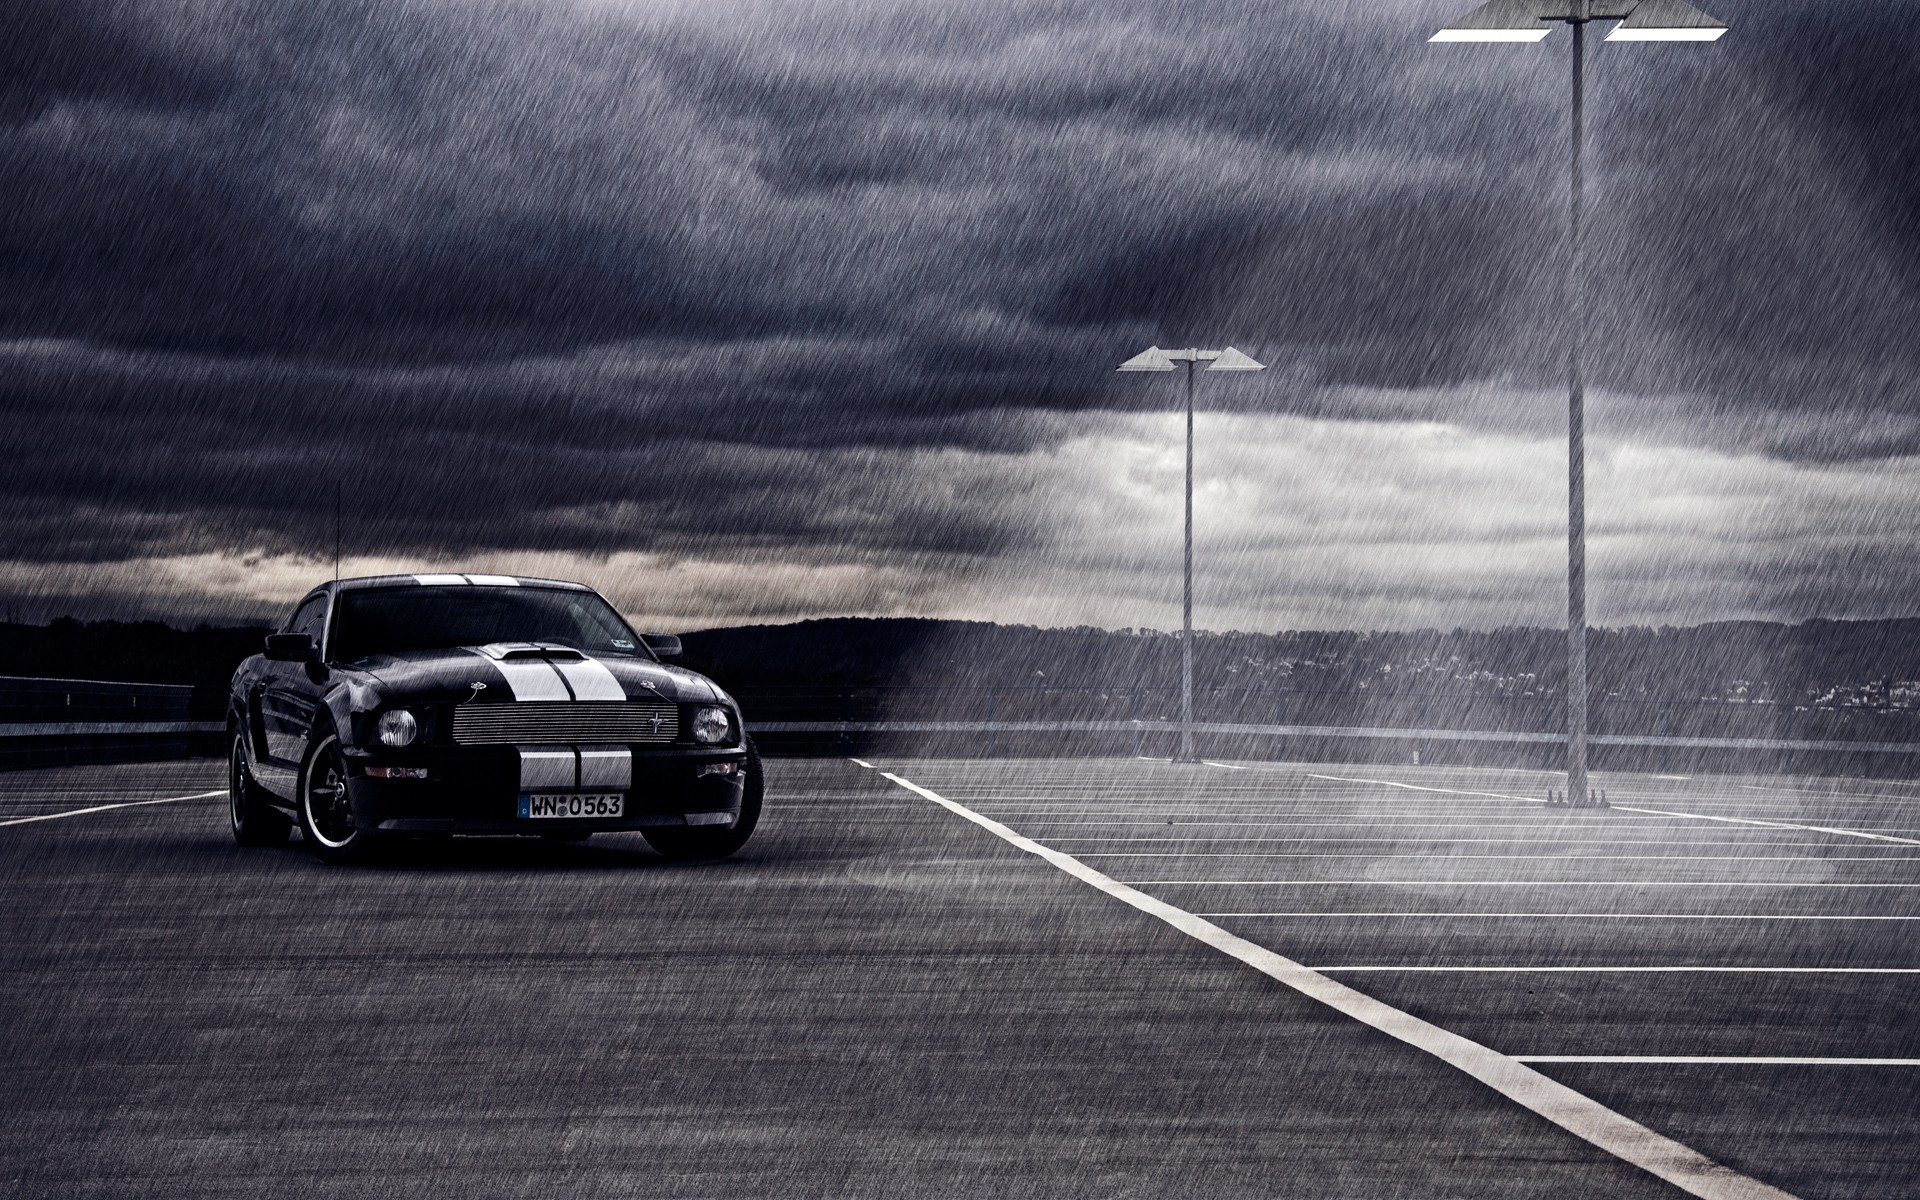 clouds rain cars vehicles Ford mustang